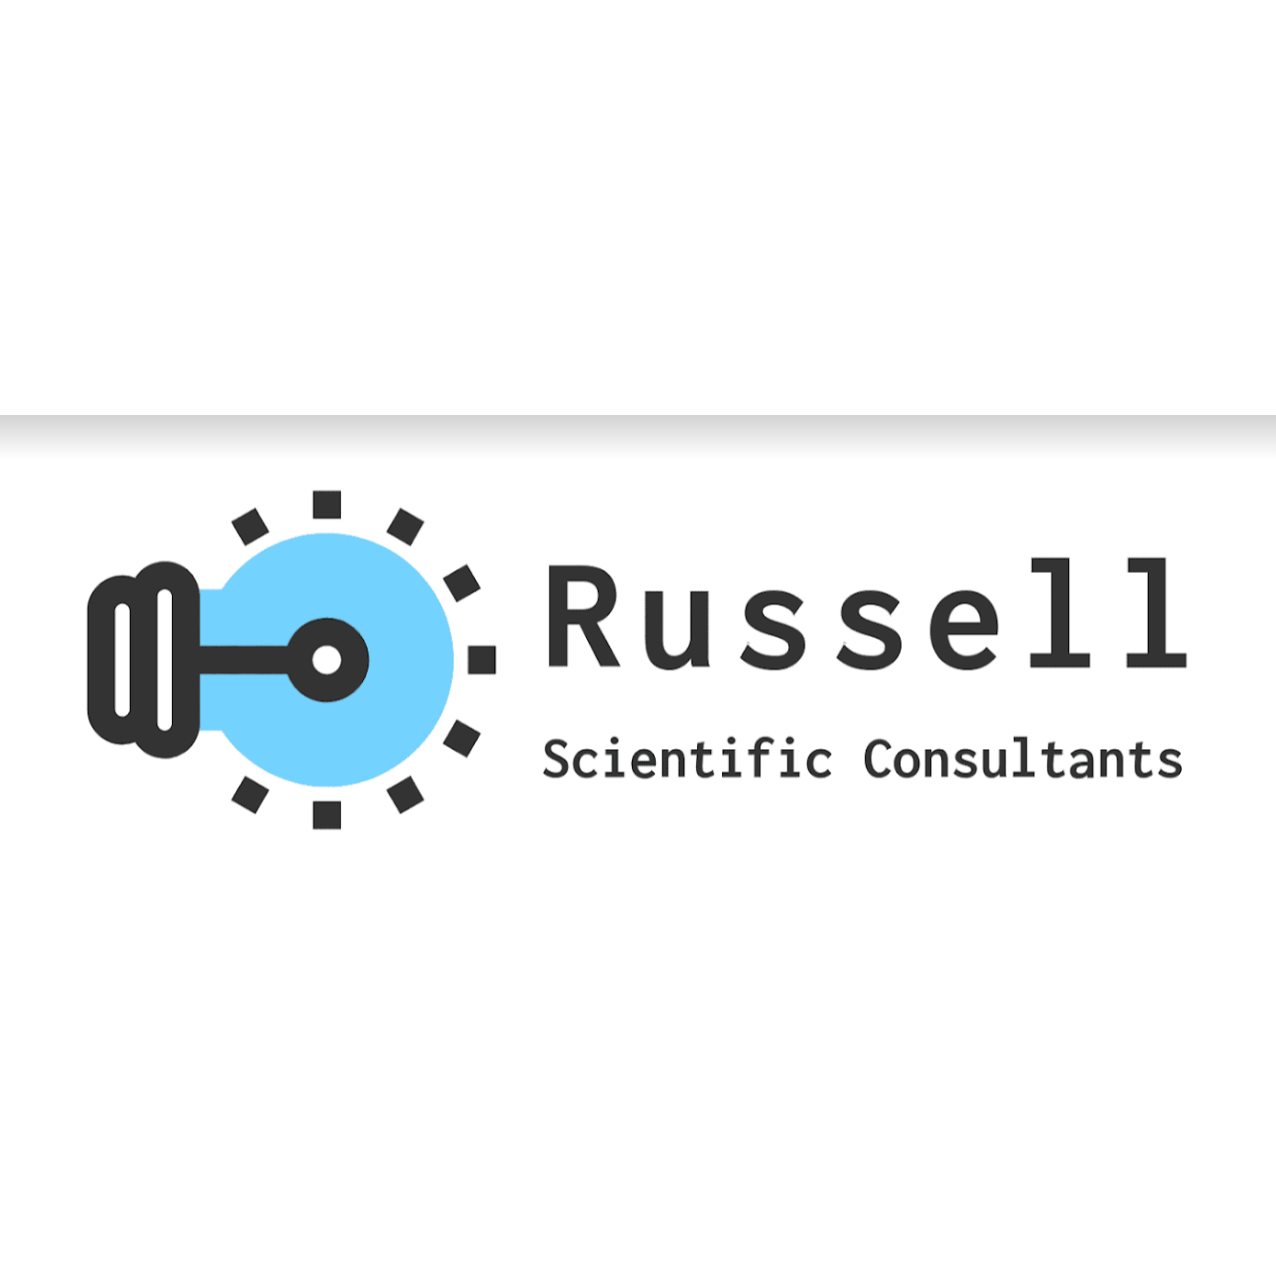 Russell Scientific Consultants